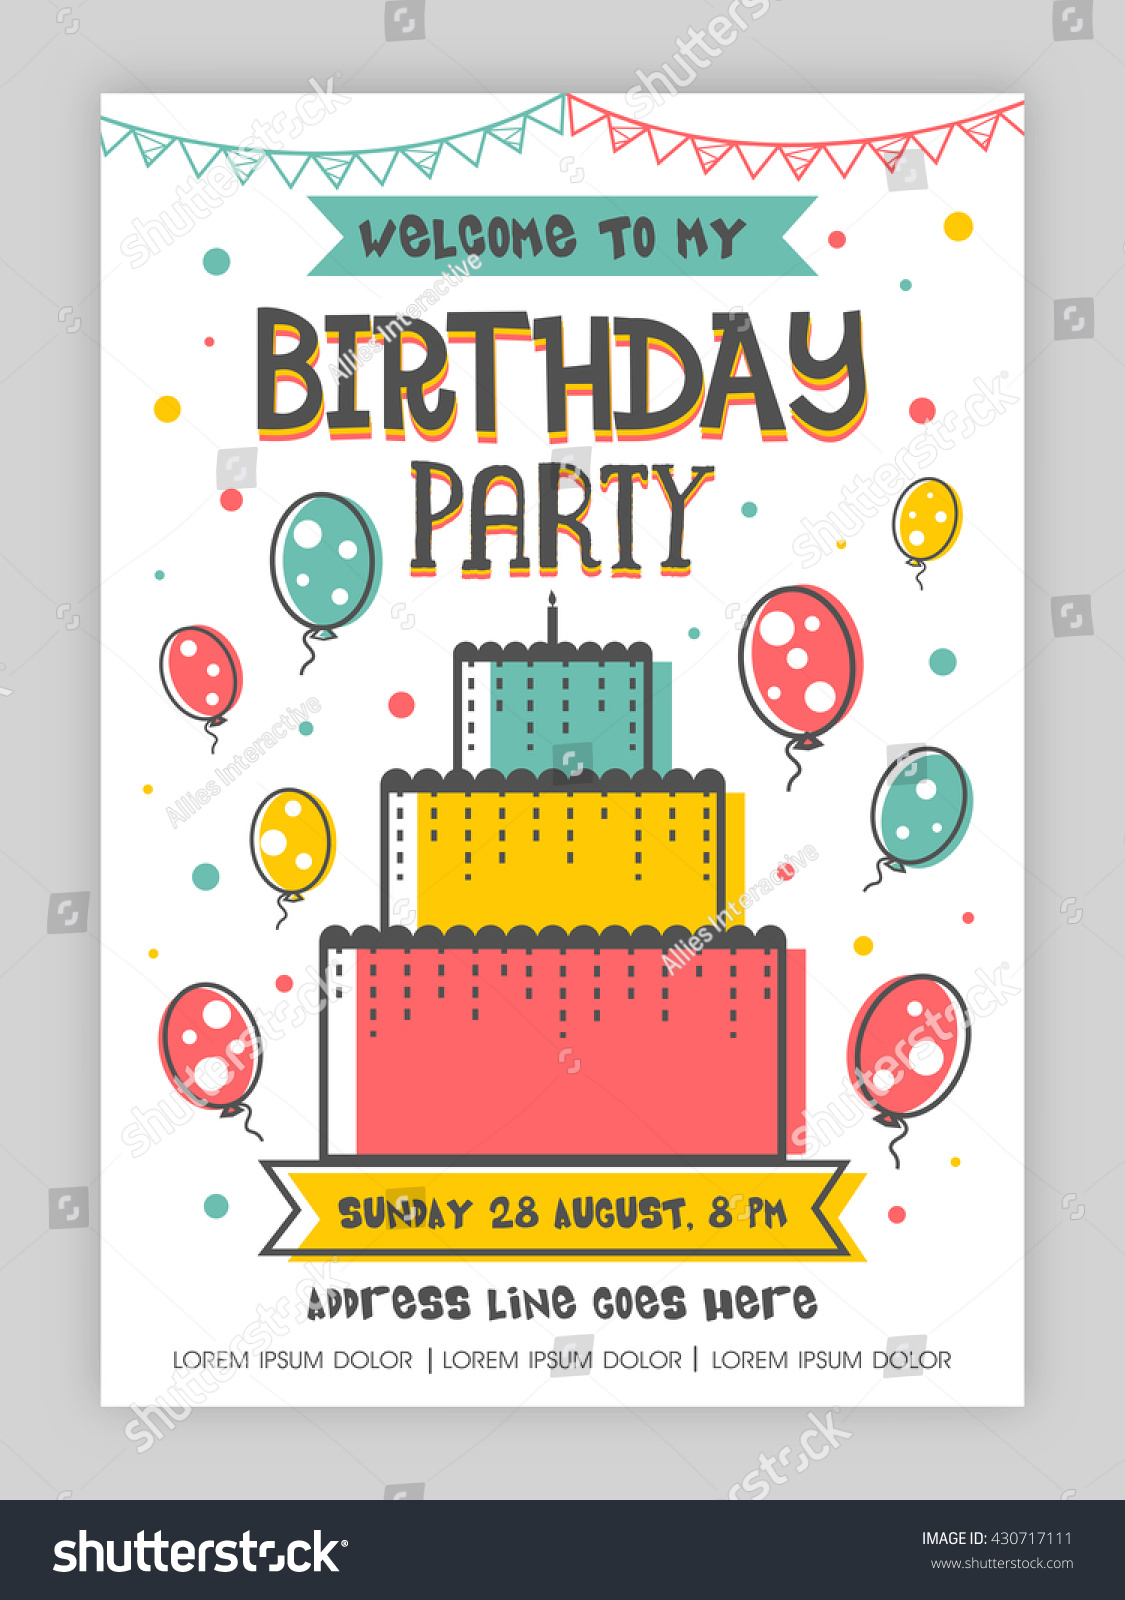 Birthday Party Invitation Card Welcome Card Stock Vector (Royalty